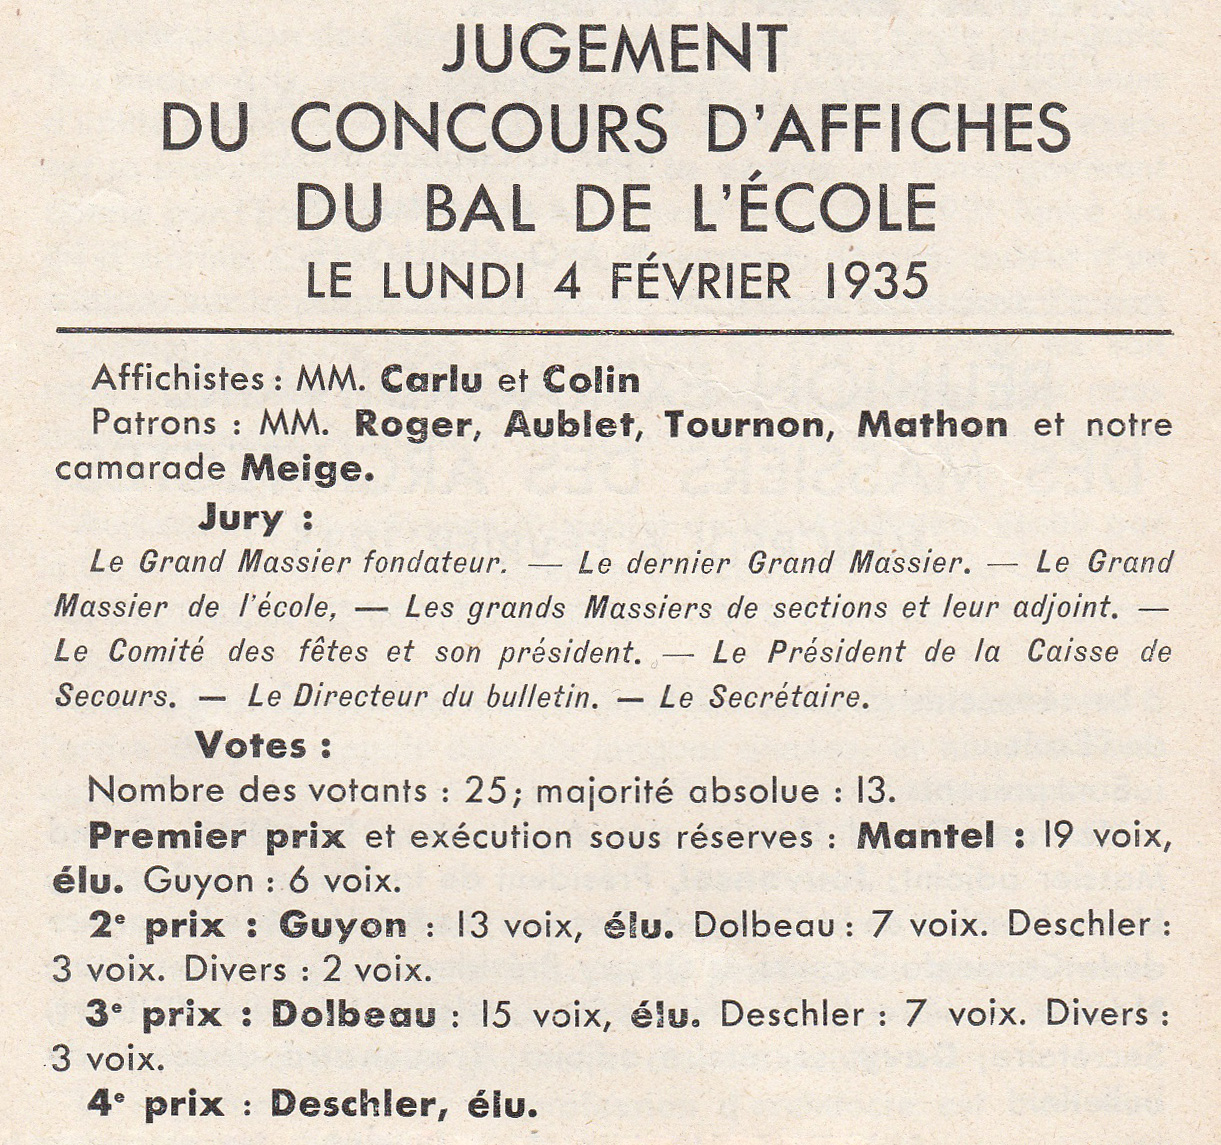 193502_Bulletin-GMBA_Jugement-concours-affiches.jpg